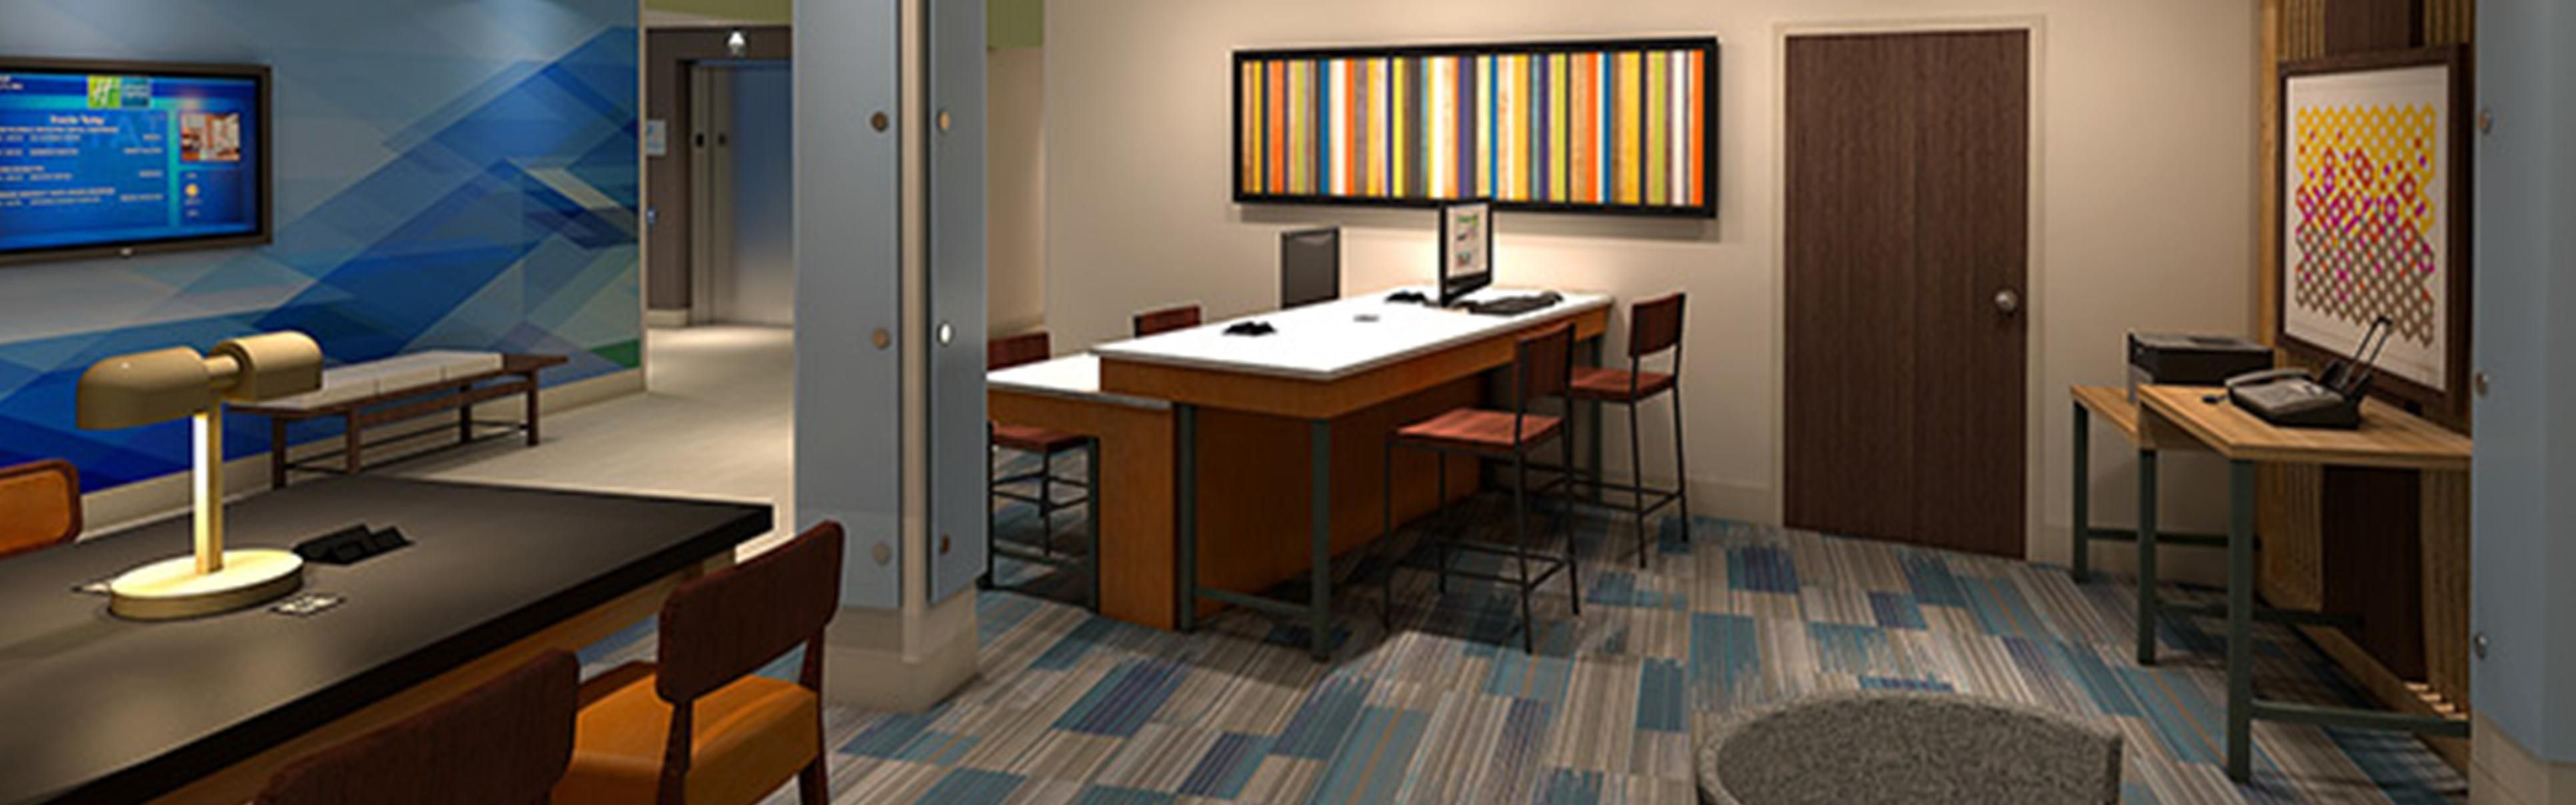 Holiday Inn Express & Suites Houston NW - Cypress Grand Pky image 2